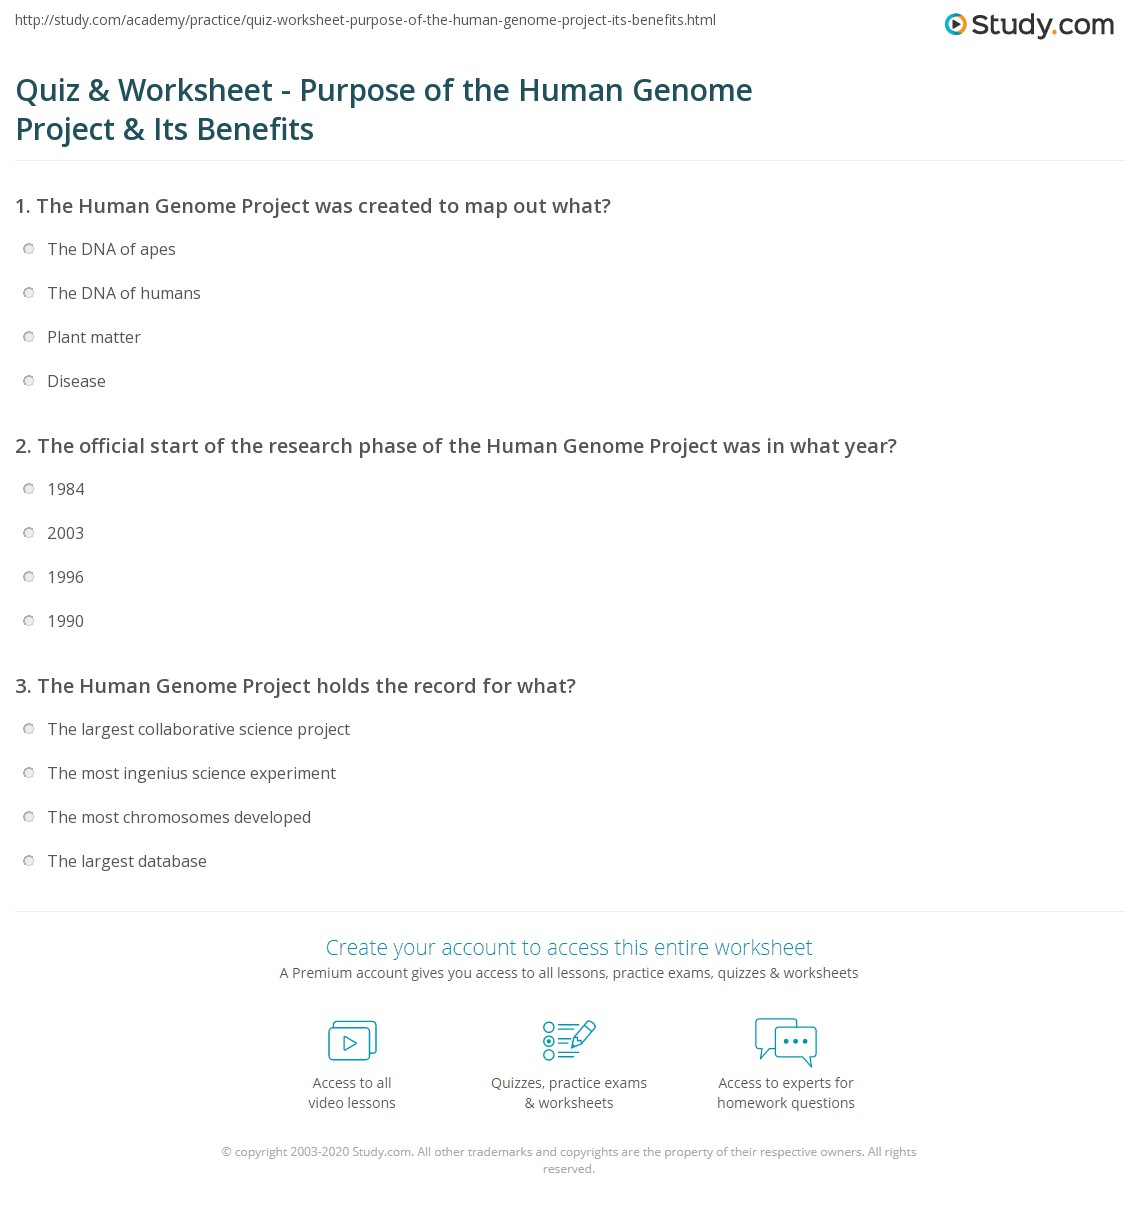 quiz & worksheet - purpose of the human genome project & its